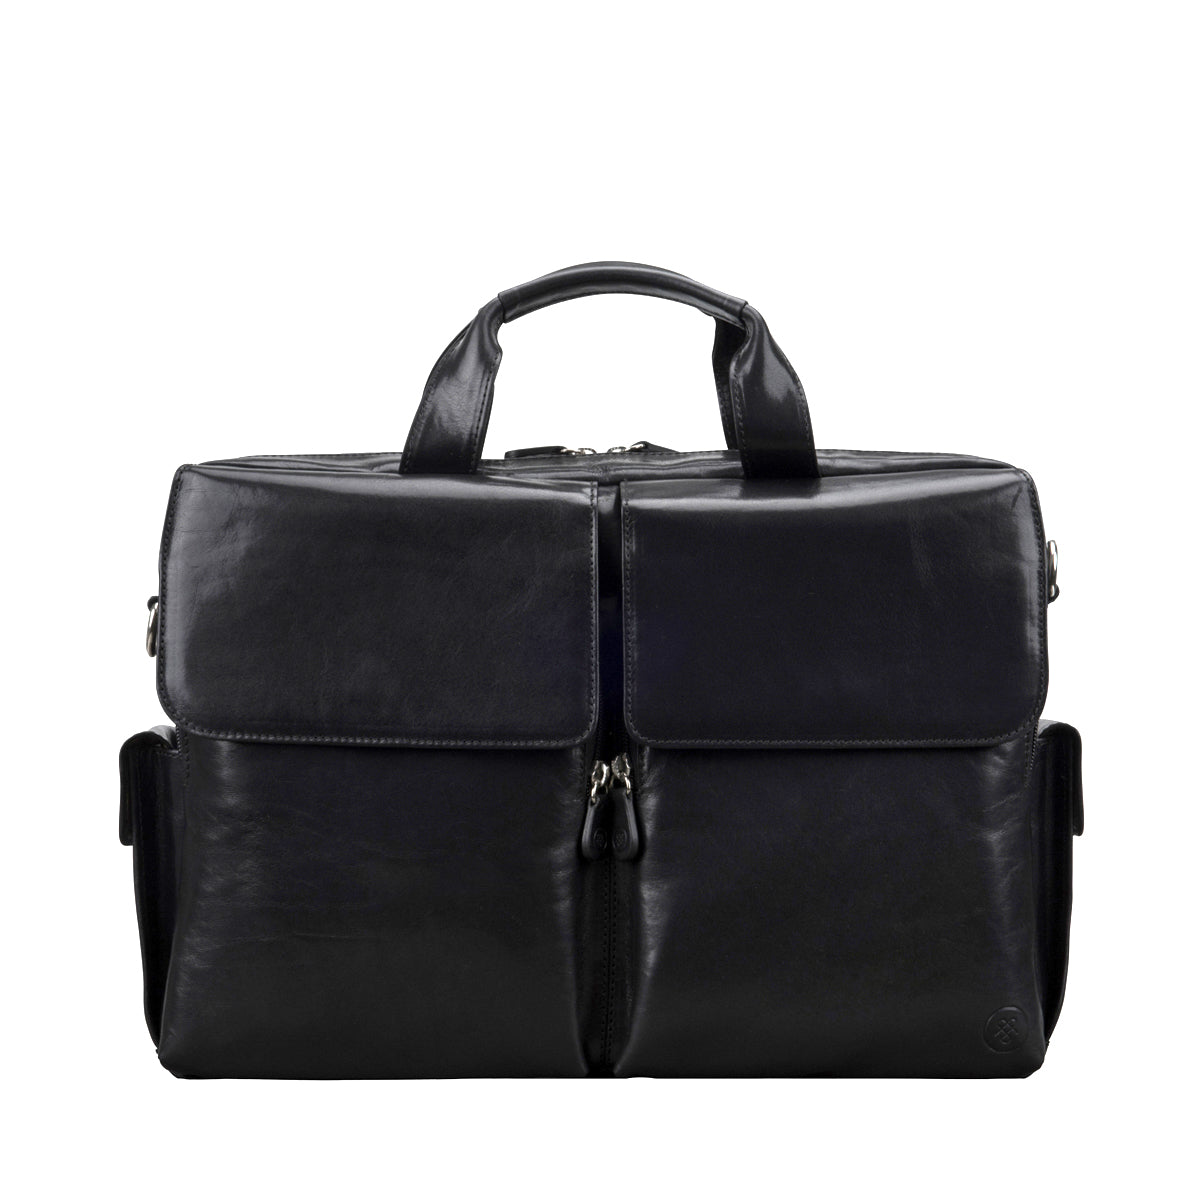 Image 1 of the 'Lagaro' Black Veg-Tanned Leather Briefcase